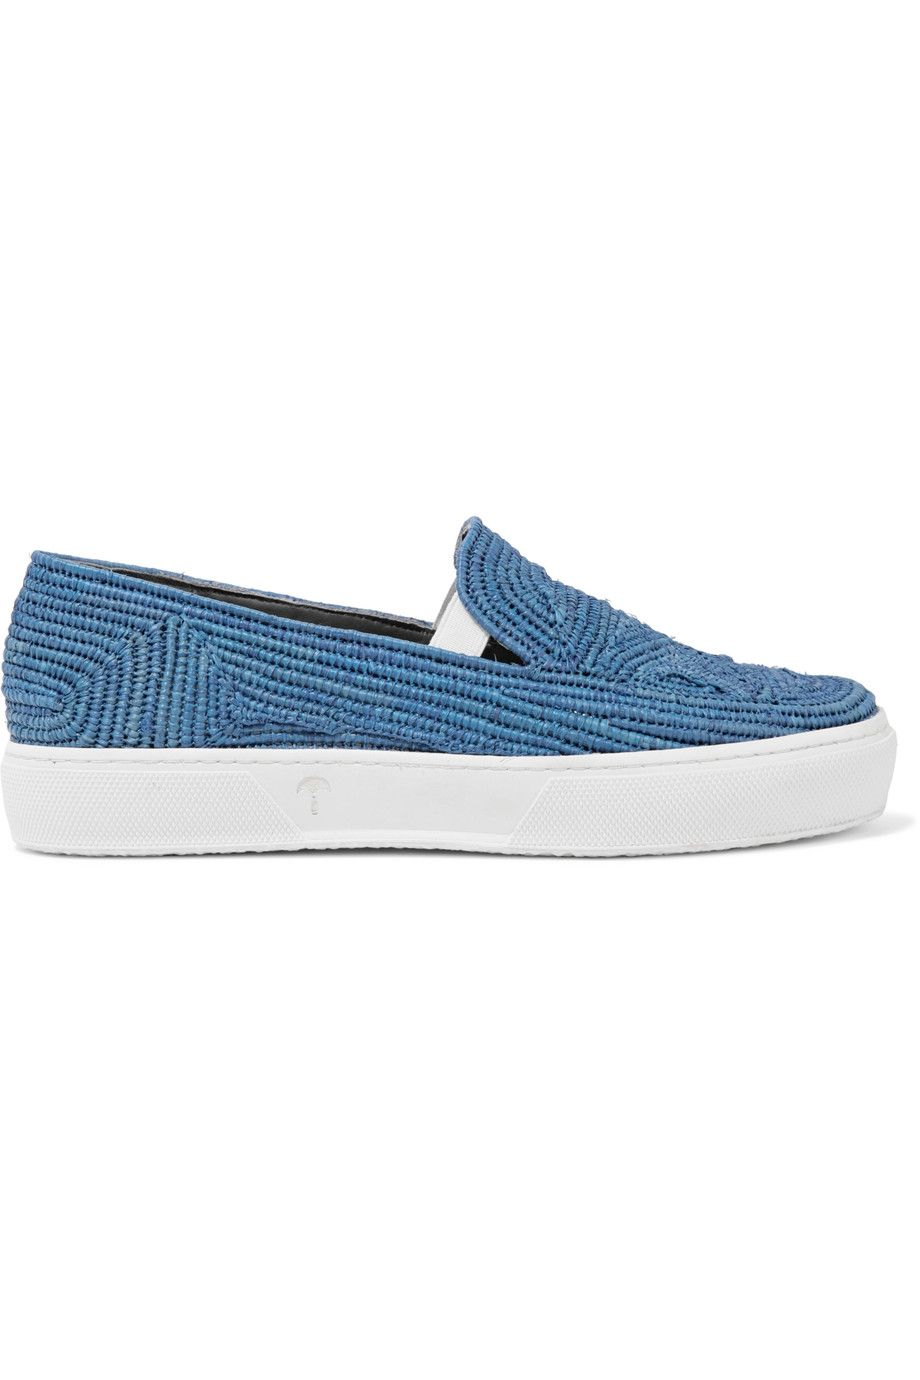 ROBERT CLERGERIE Tribal Woven Raffia Slip-On Sneakers. #robertclergerie # shoes #sneakers